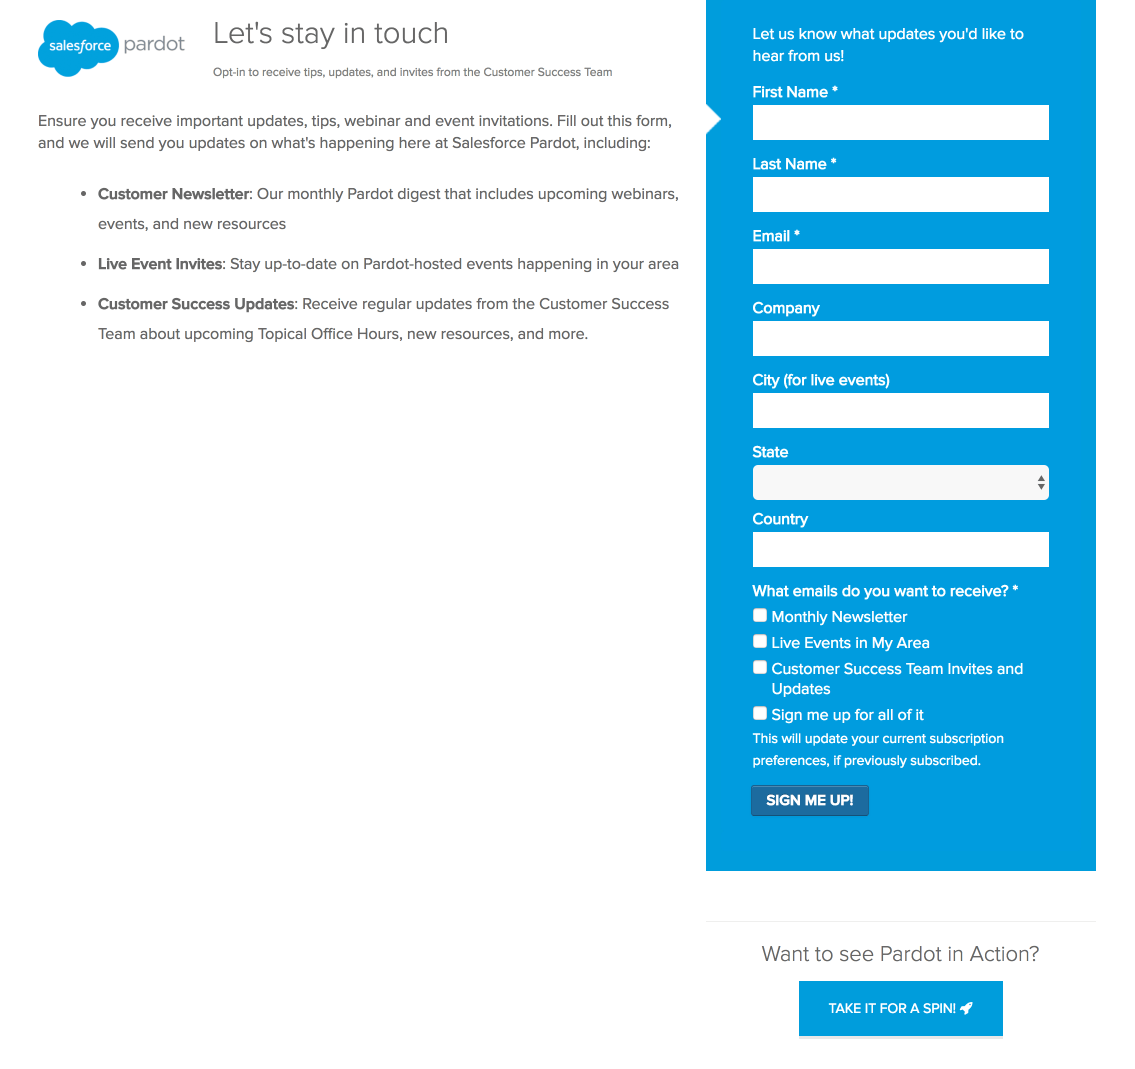 To Sign Up For Pardot Updates